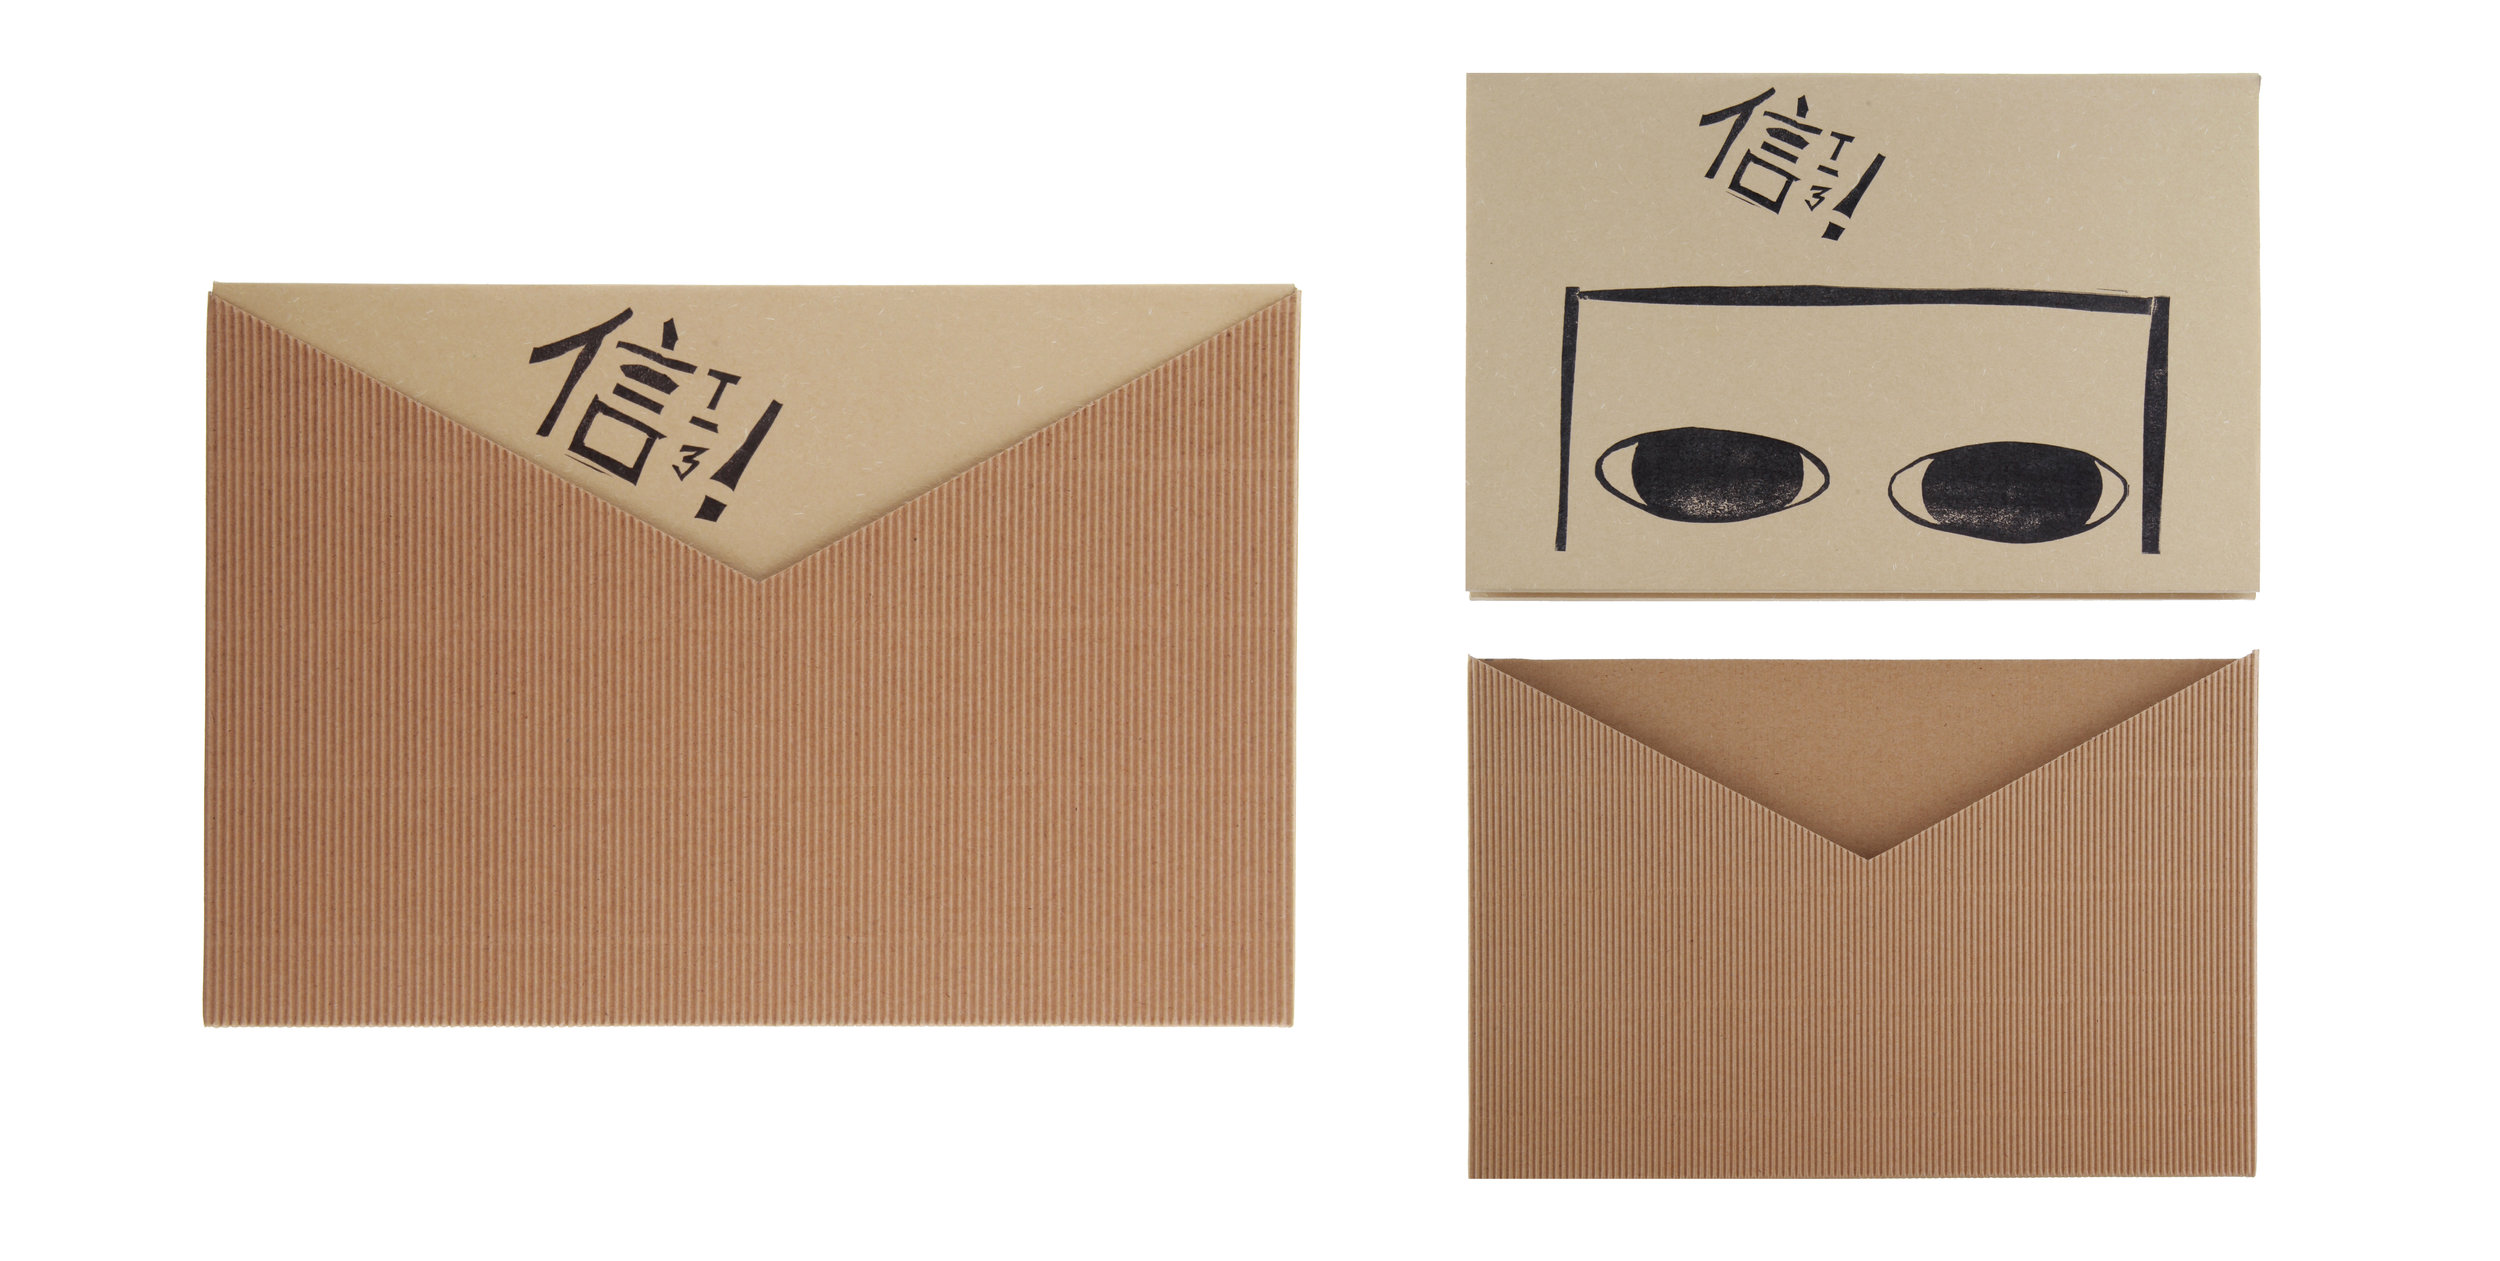 Cover Design's concept is from the form of Letter.